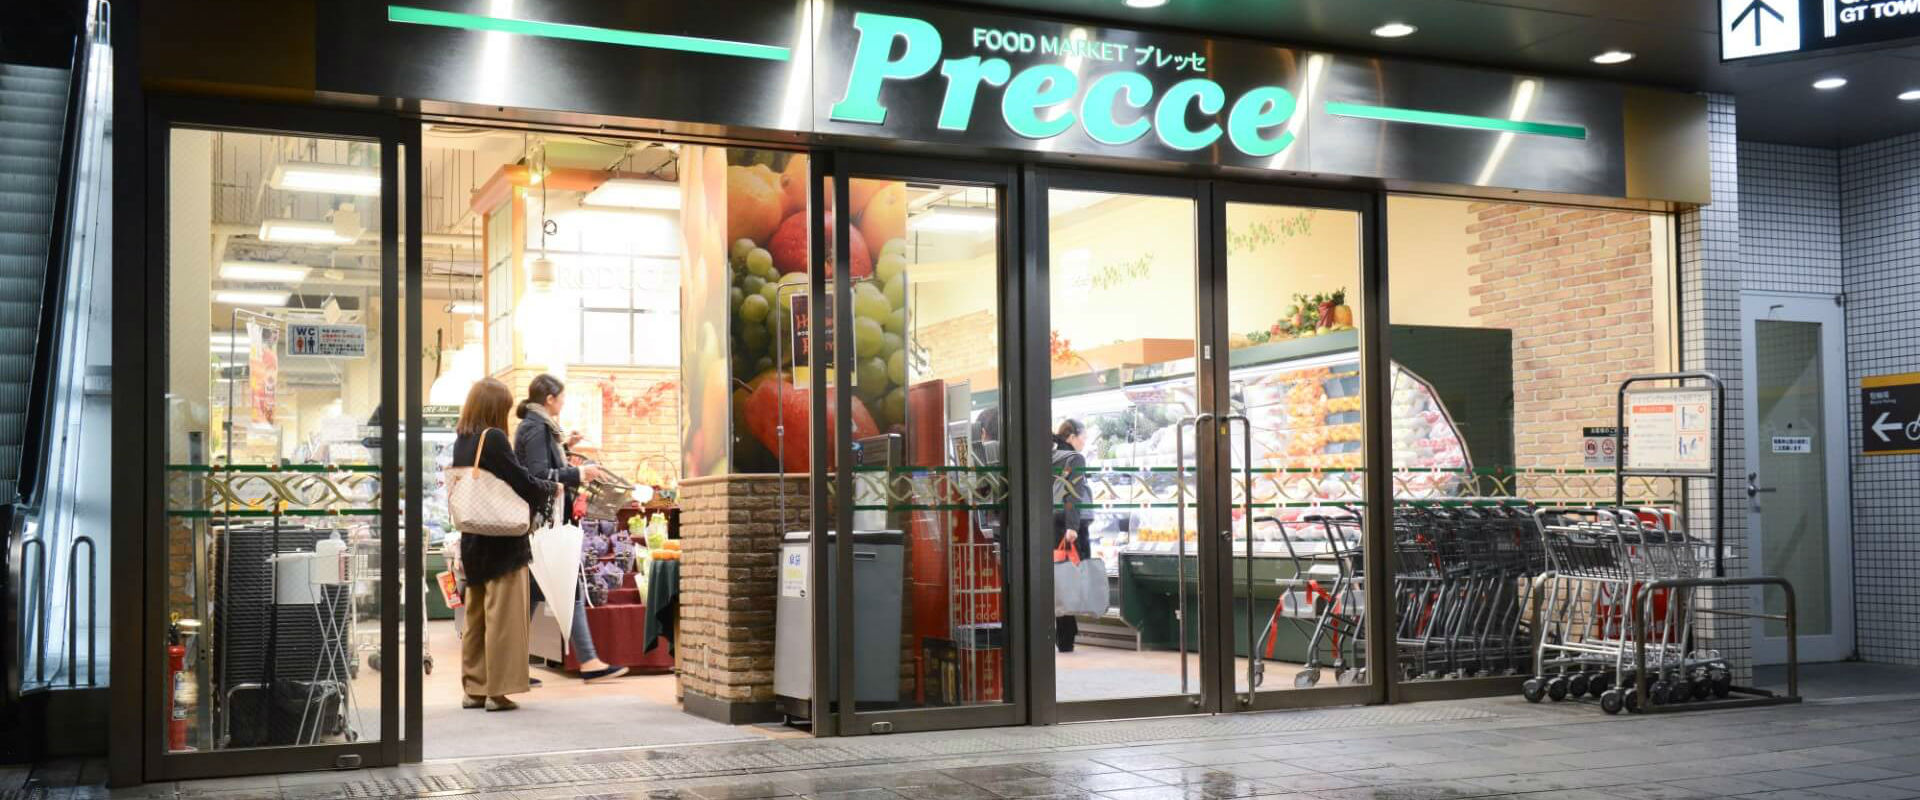 Precce Food Market